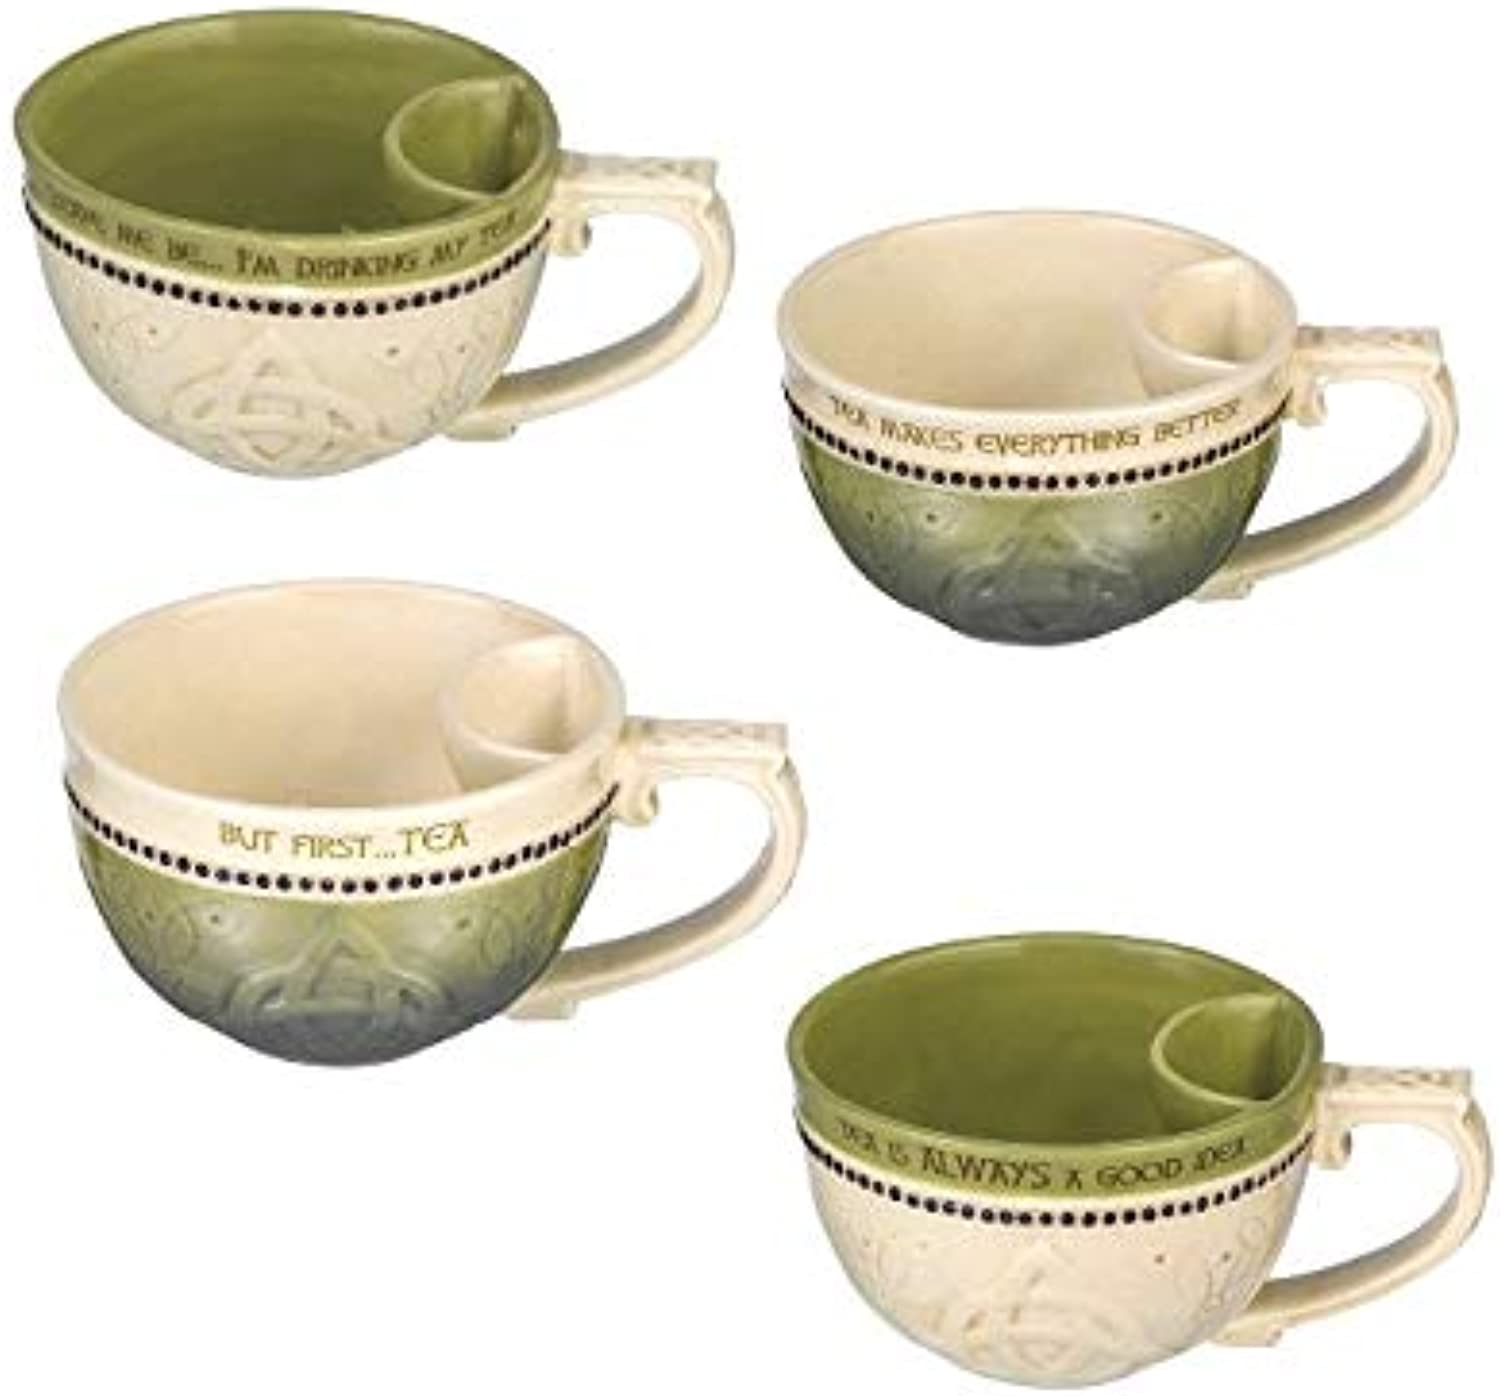 Celtic Teacups with Bag Holder (Set of 4)